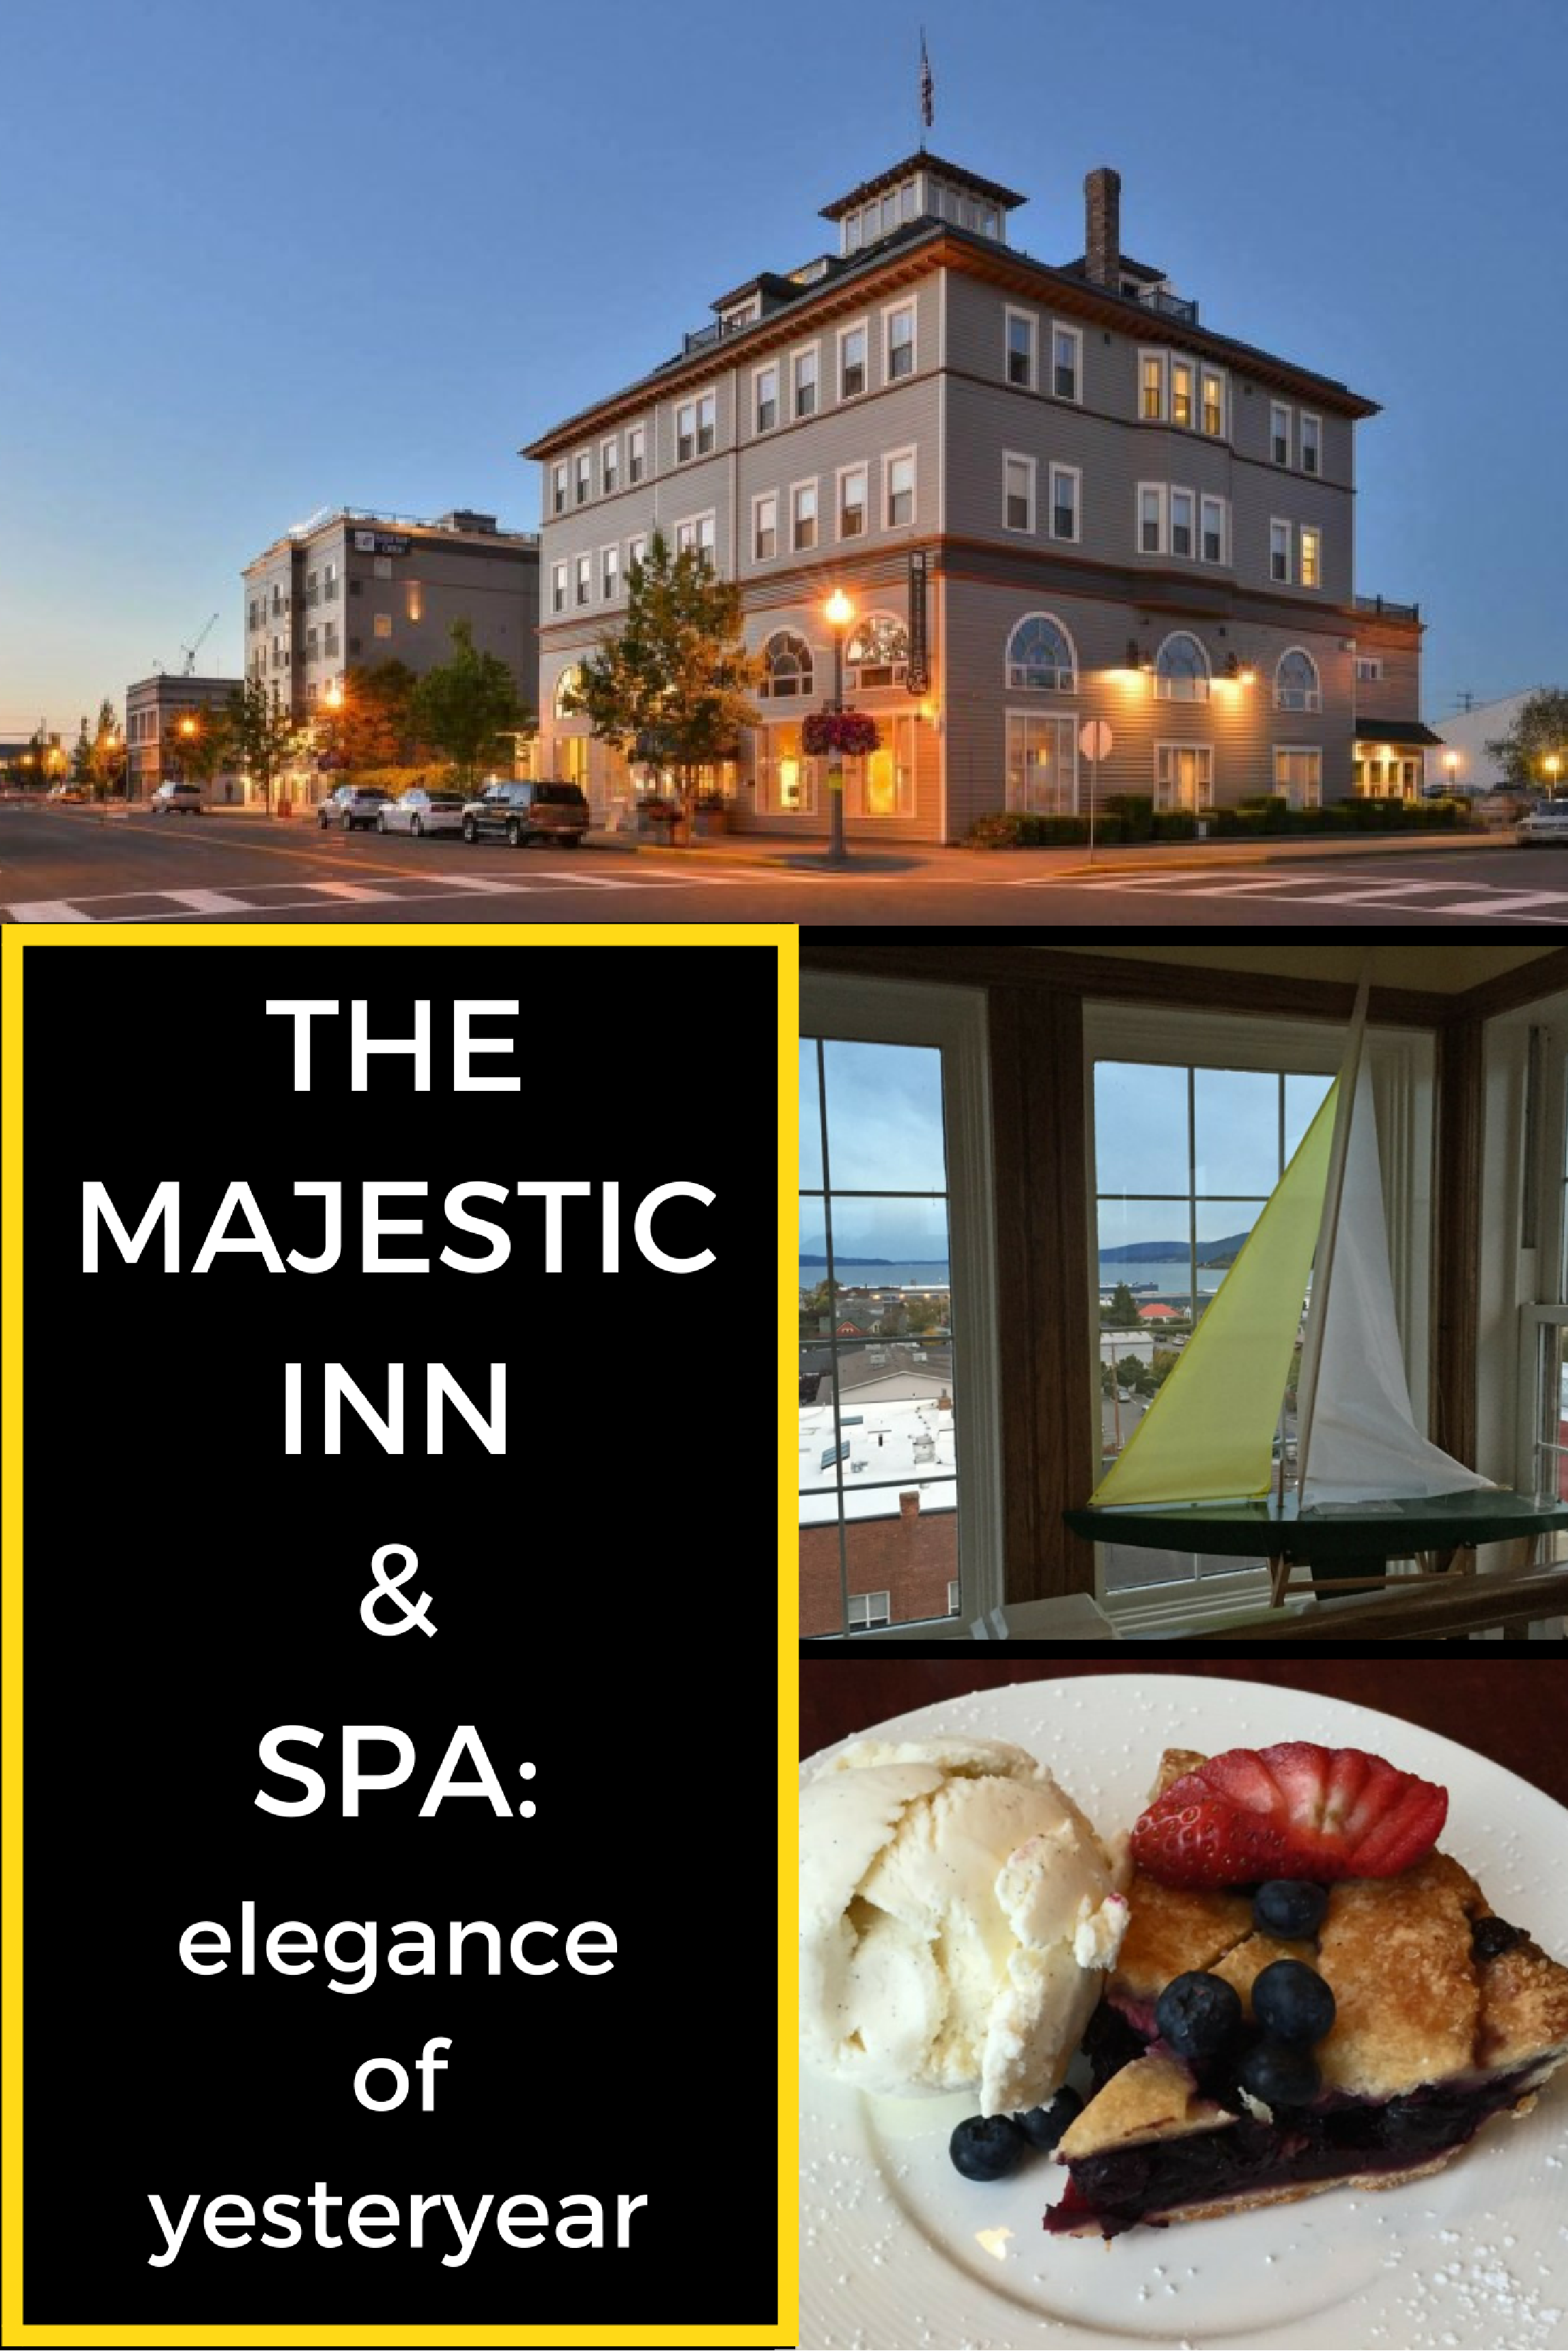 Read about Elizabeth's stay in the charming small town Anacortes, Washington at the Majestic Inn and Spa.